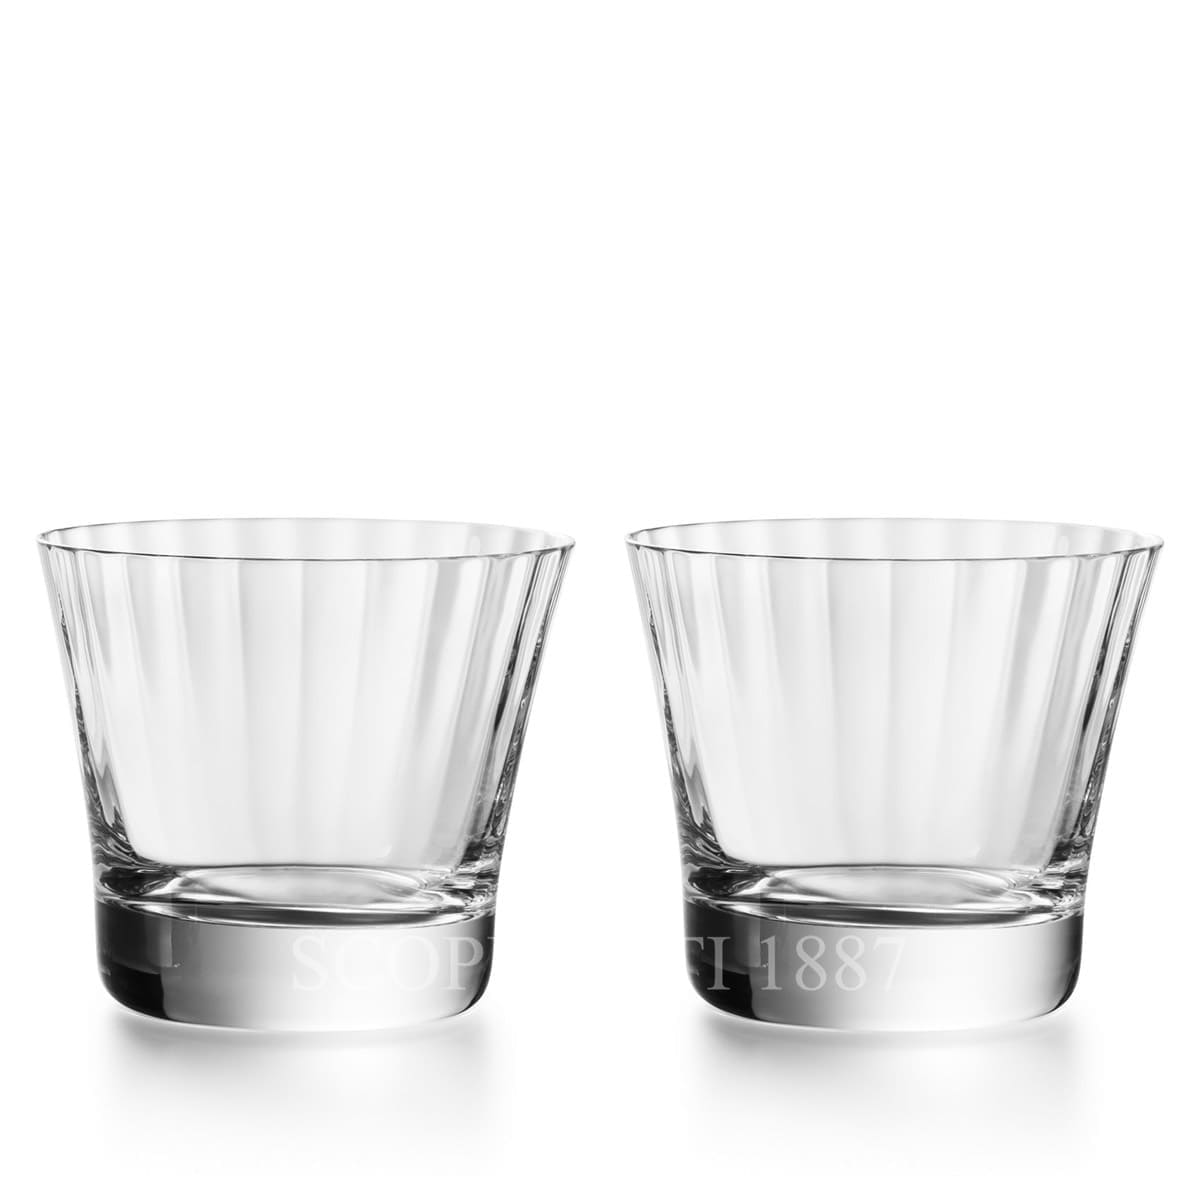 baccarat french design mille nuits crystal tumblers